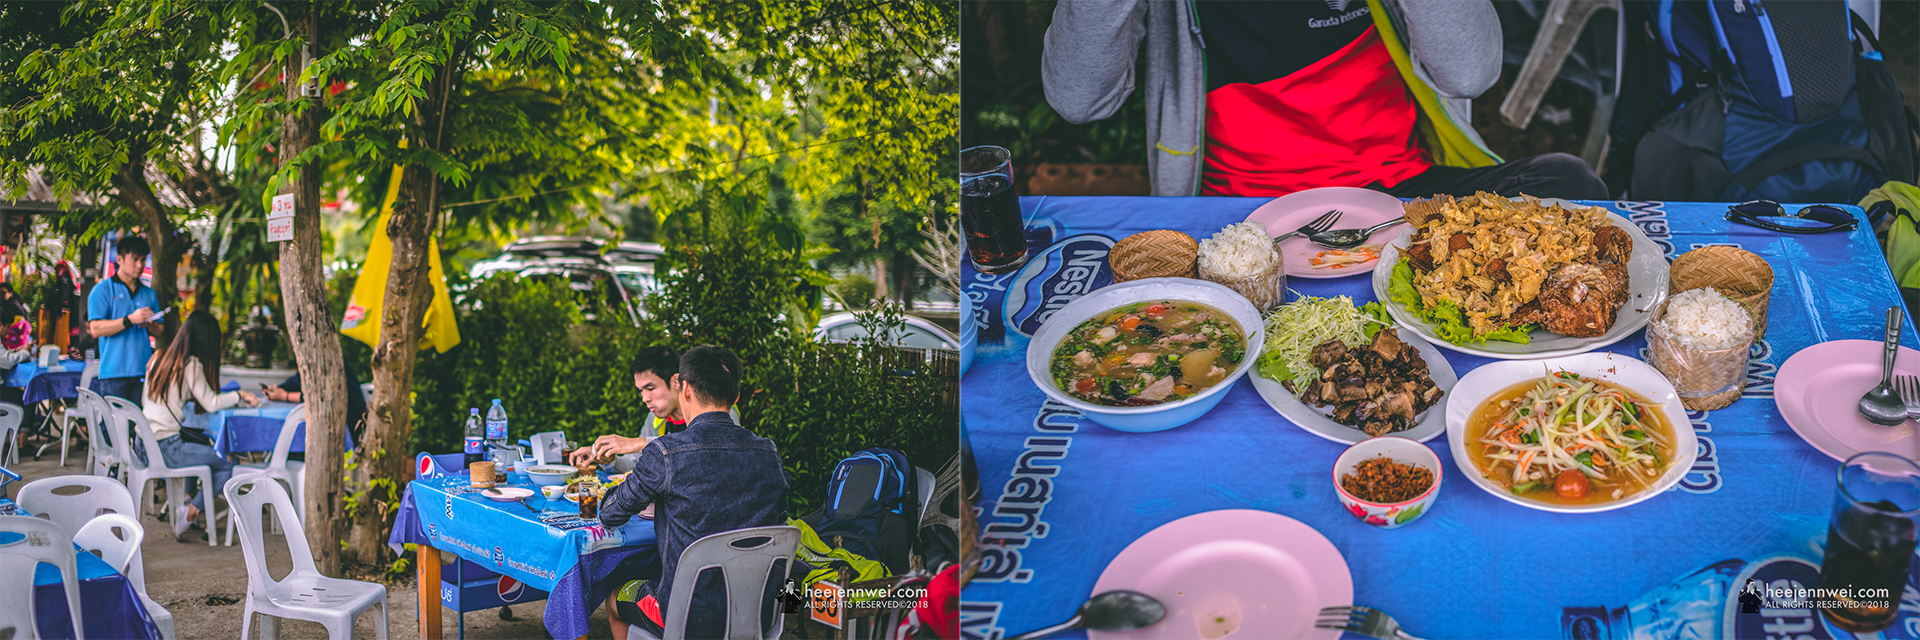 When in Chiang Rai, lunch at Lab Sanam Keela is a MUST! This is a local Thai food restaurant you don't want to miss! They mostly serve Lanna food; here are the few dishes i'd recommend - Yang Ruam (Pork), Jeen Neung (Beef), Tom Sab Moo (Spicy Soup), Pla Tabtim Tod Kratiem (Fried Fish) and sticky rice!